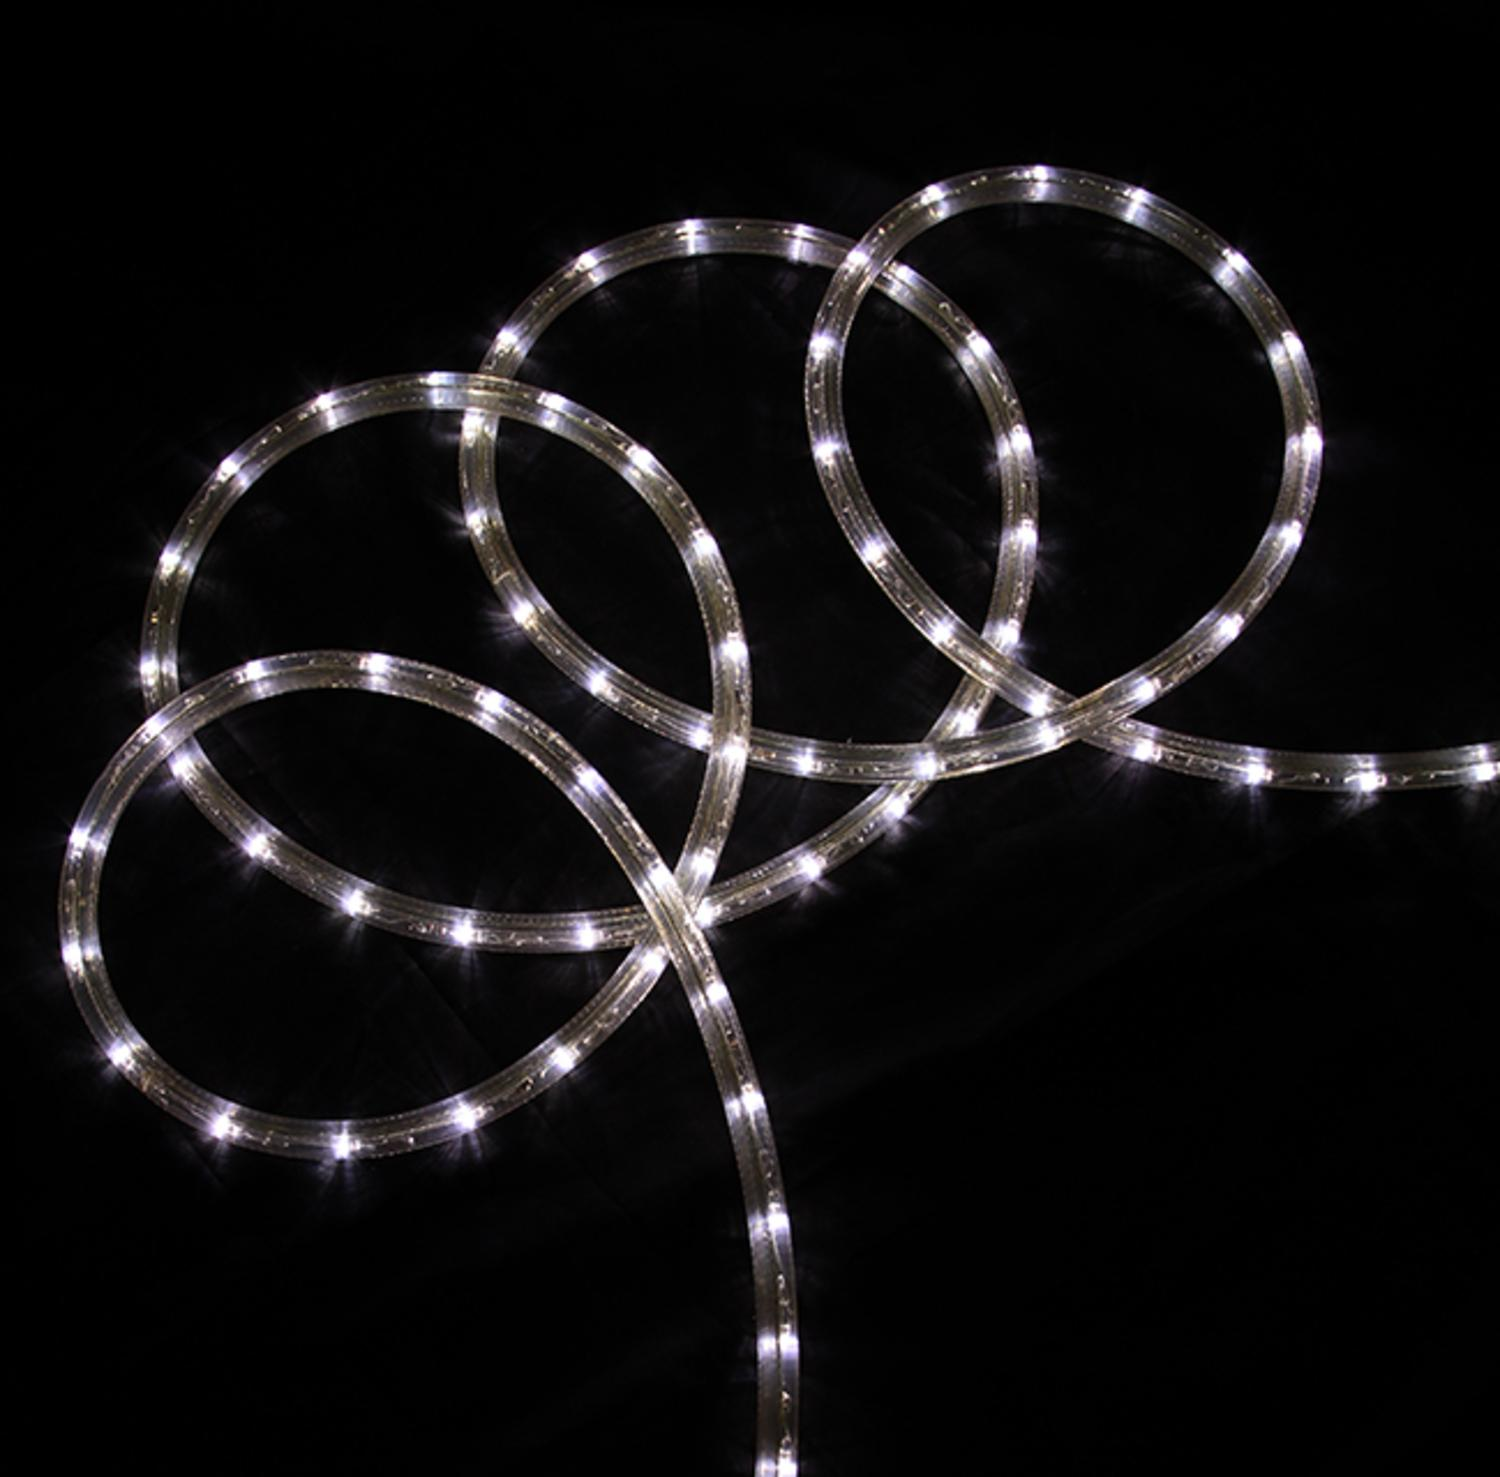 Led Lights At Walmart Northlight 18 Ft Pure White Led Indoor Outdoor Christmas Rope Lights